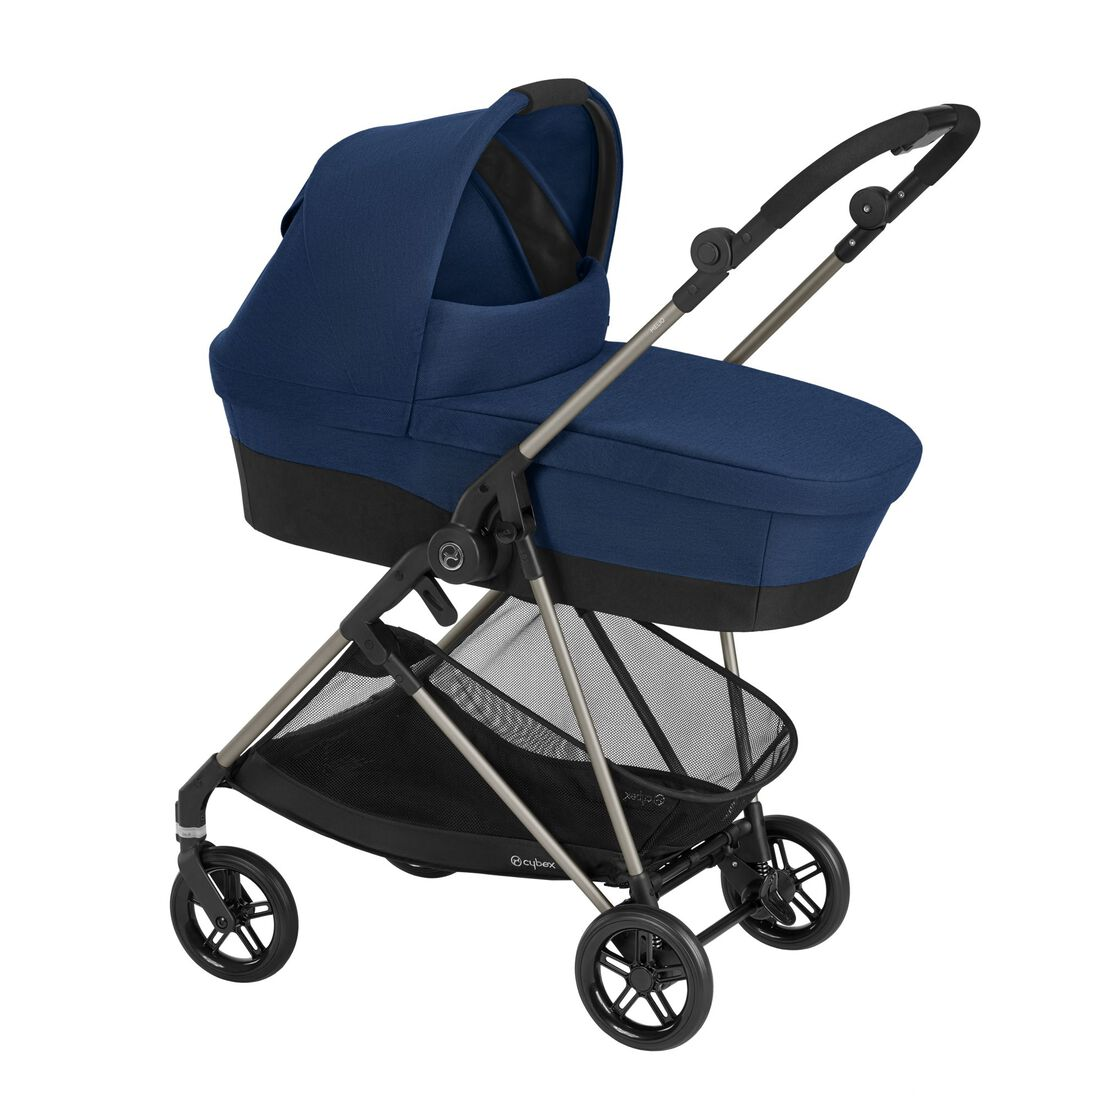 CYBEX Melio Cot - Navy Blue in Navy Blue large image number 5